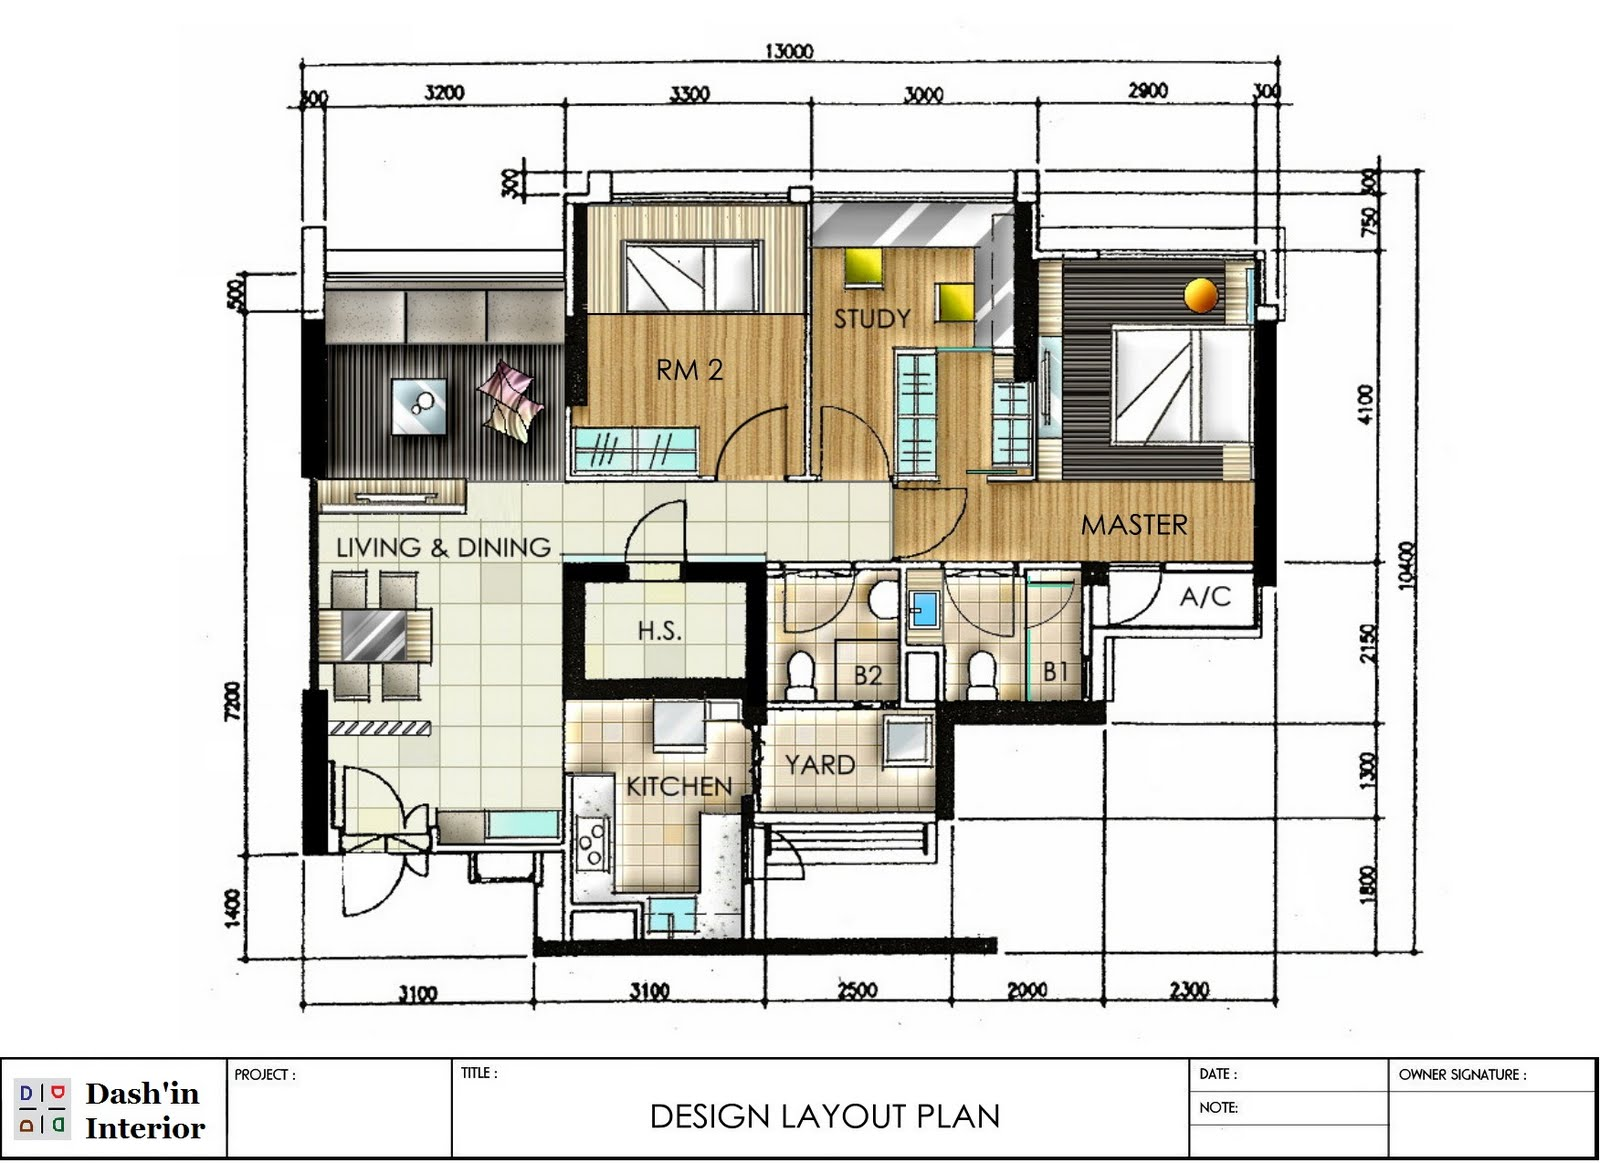 Dash 39 in interior hand drawn designs floor plan layout House layout plan